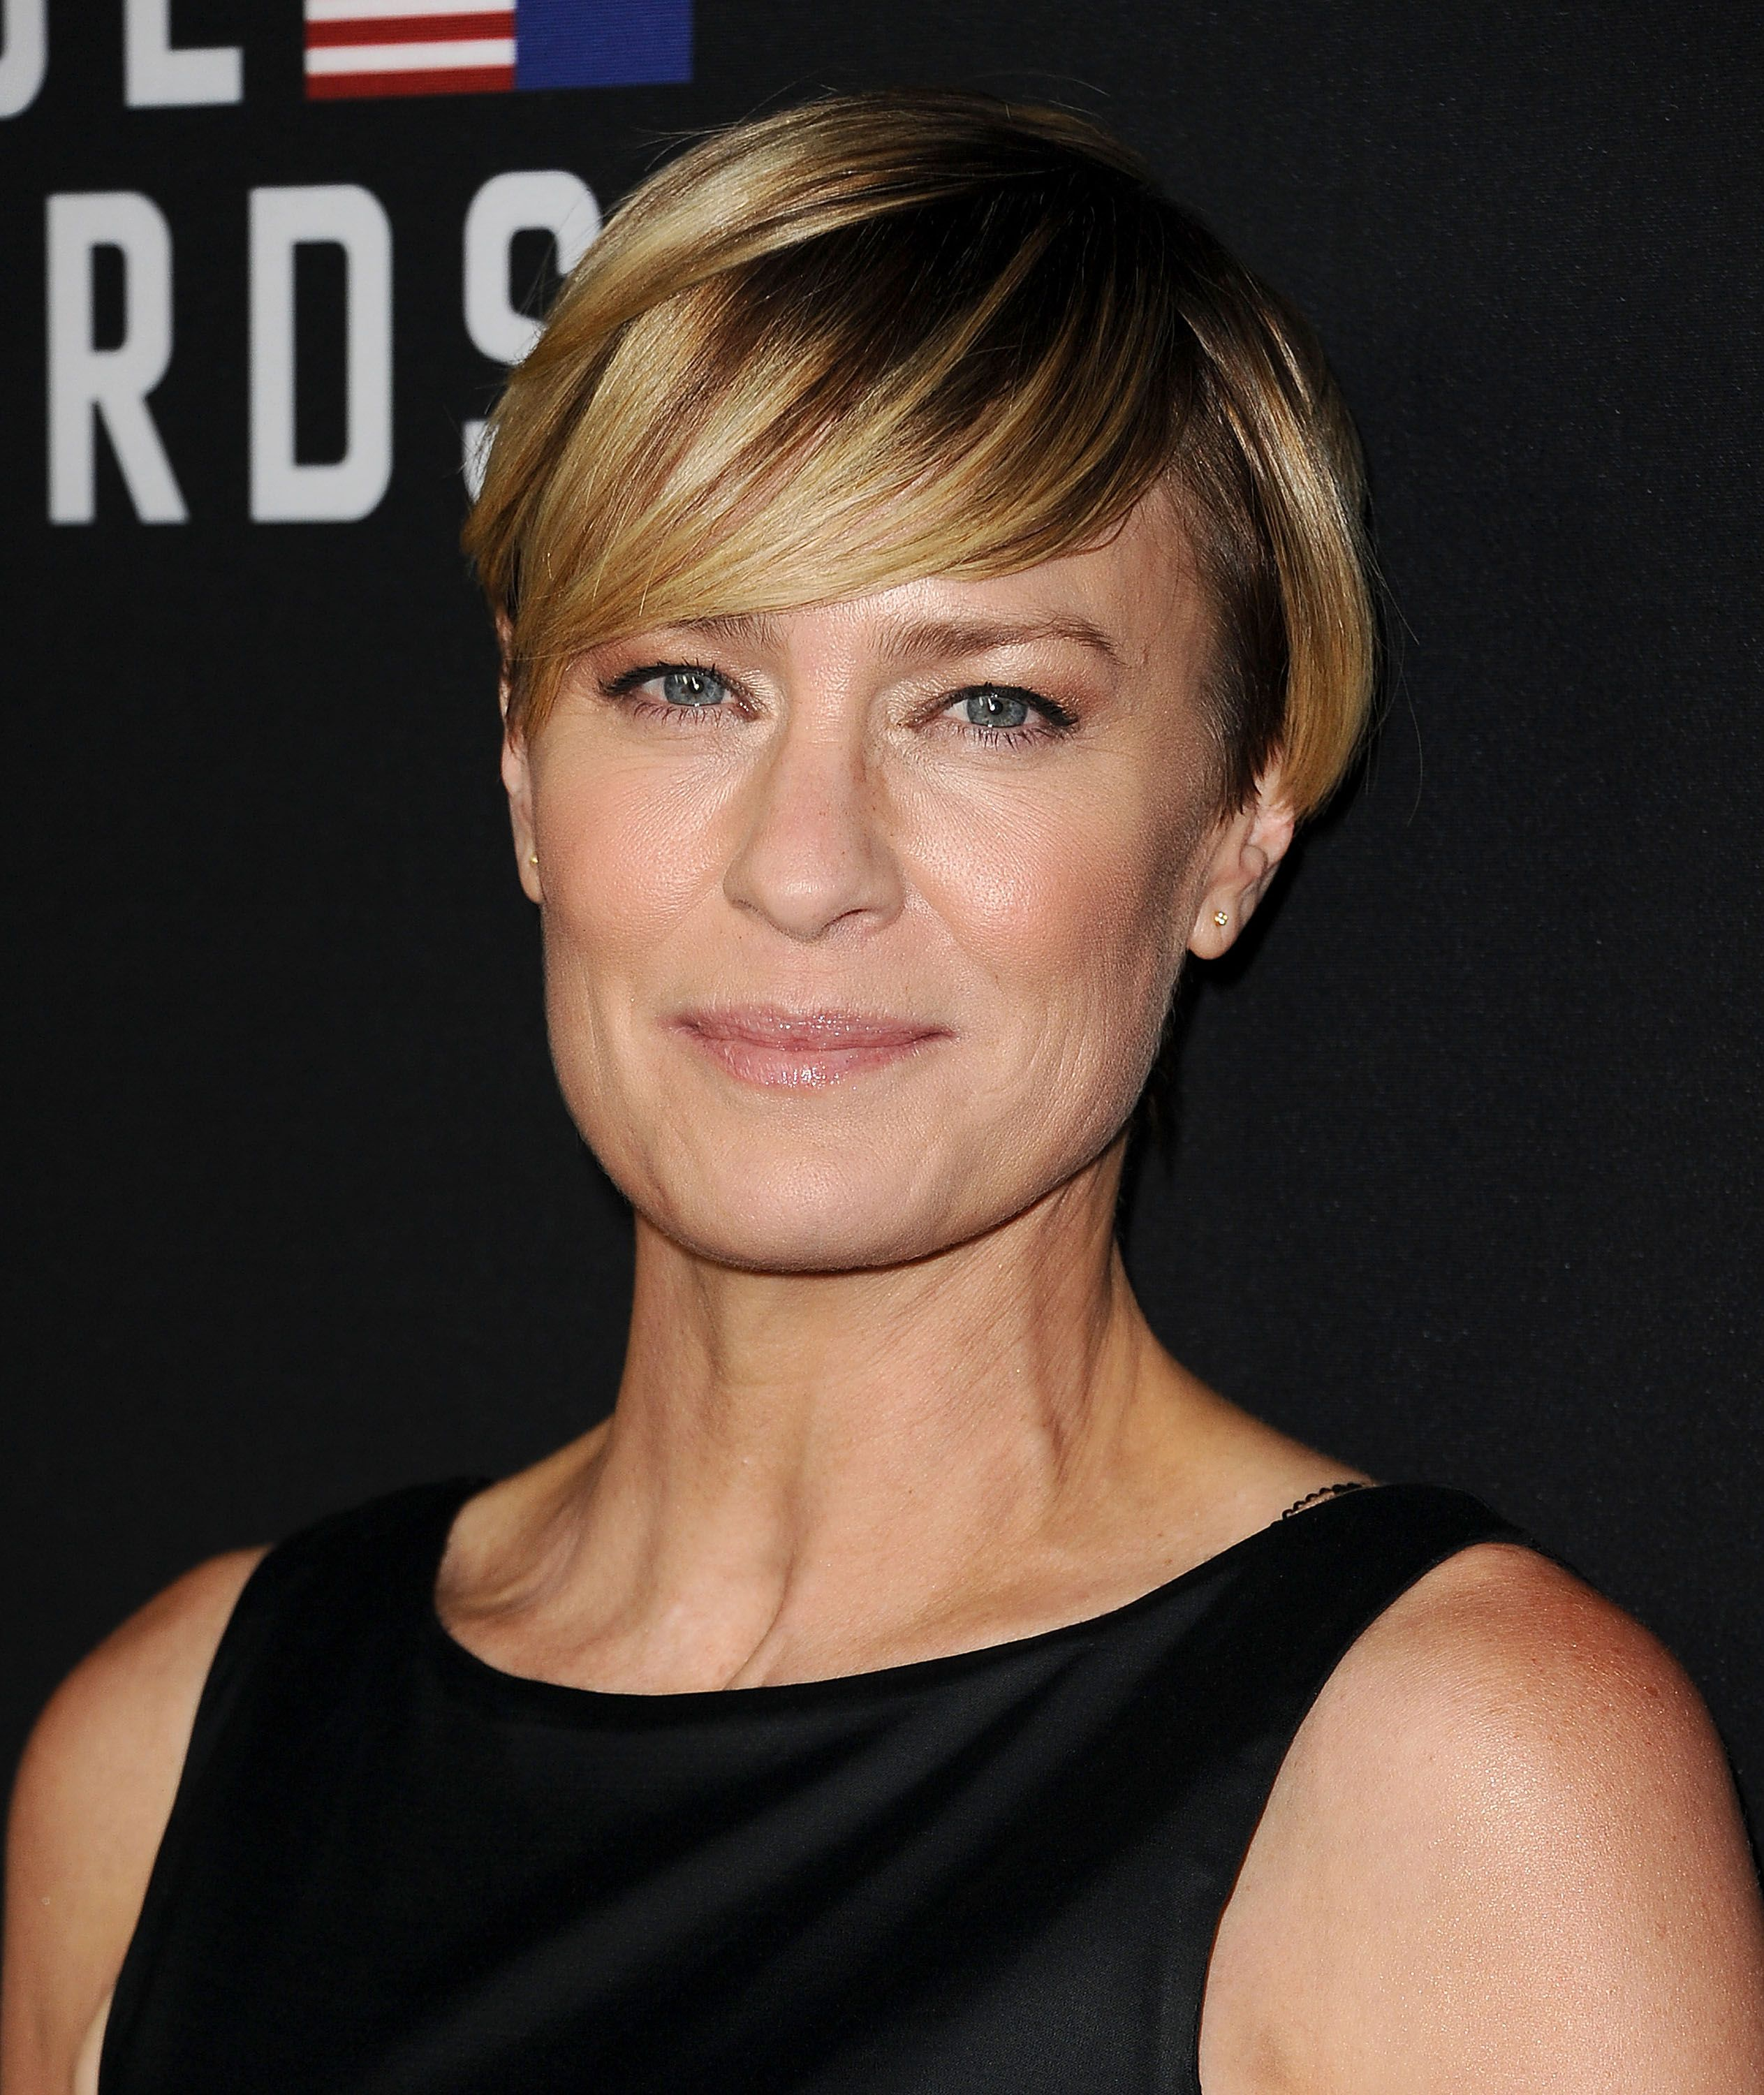 Robin Wright Haircut: 53 Celebrity Pixie Cuts So Good You'll Actually Want To